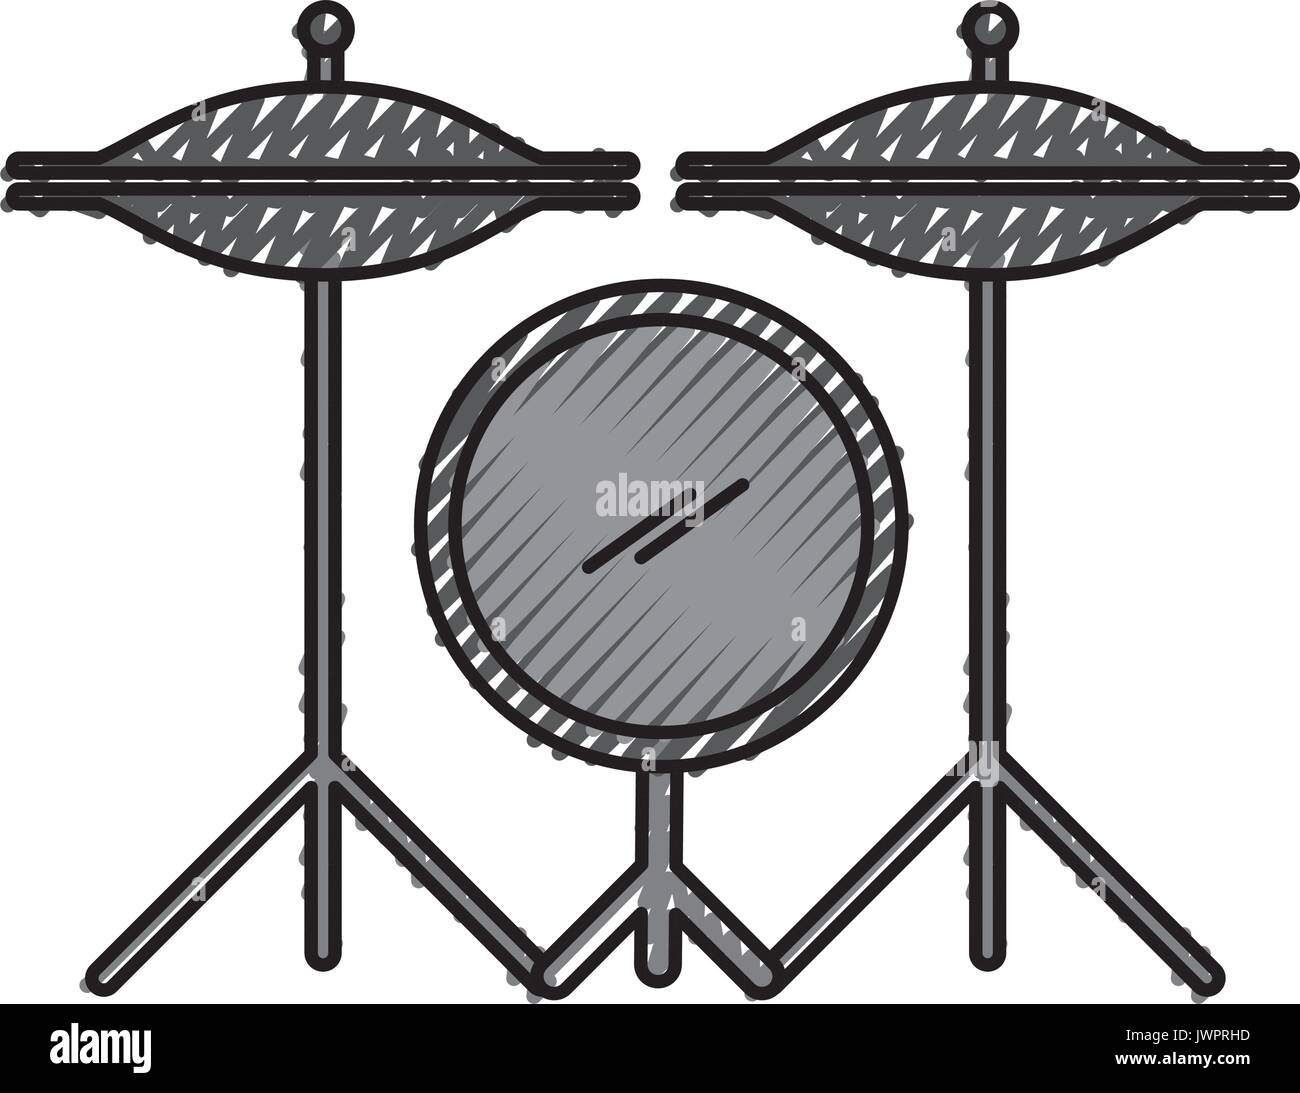 battery drums instrument icon - Stock Image